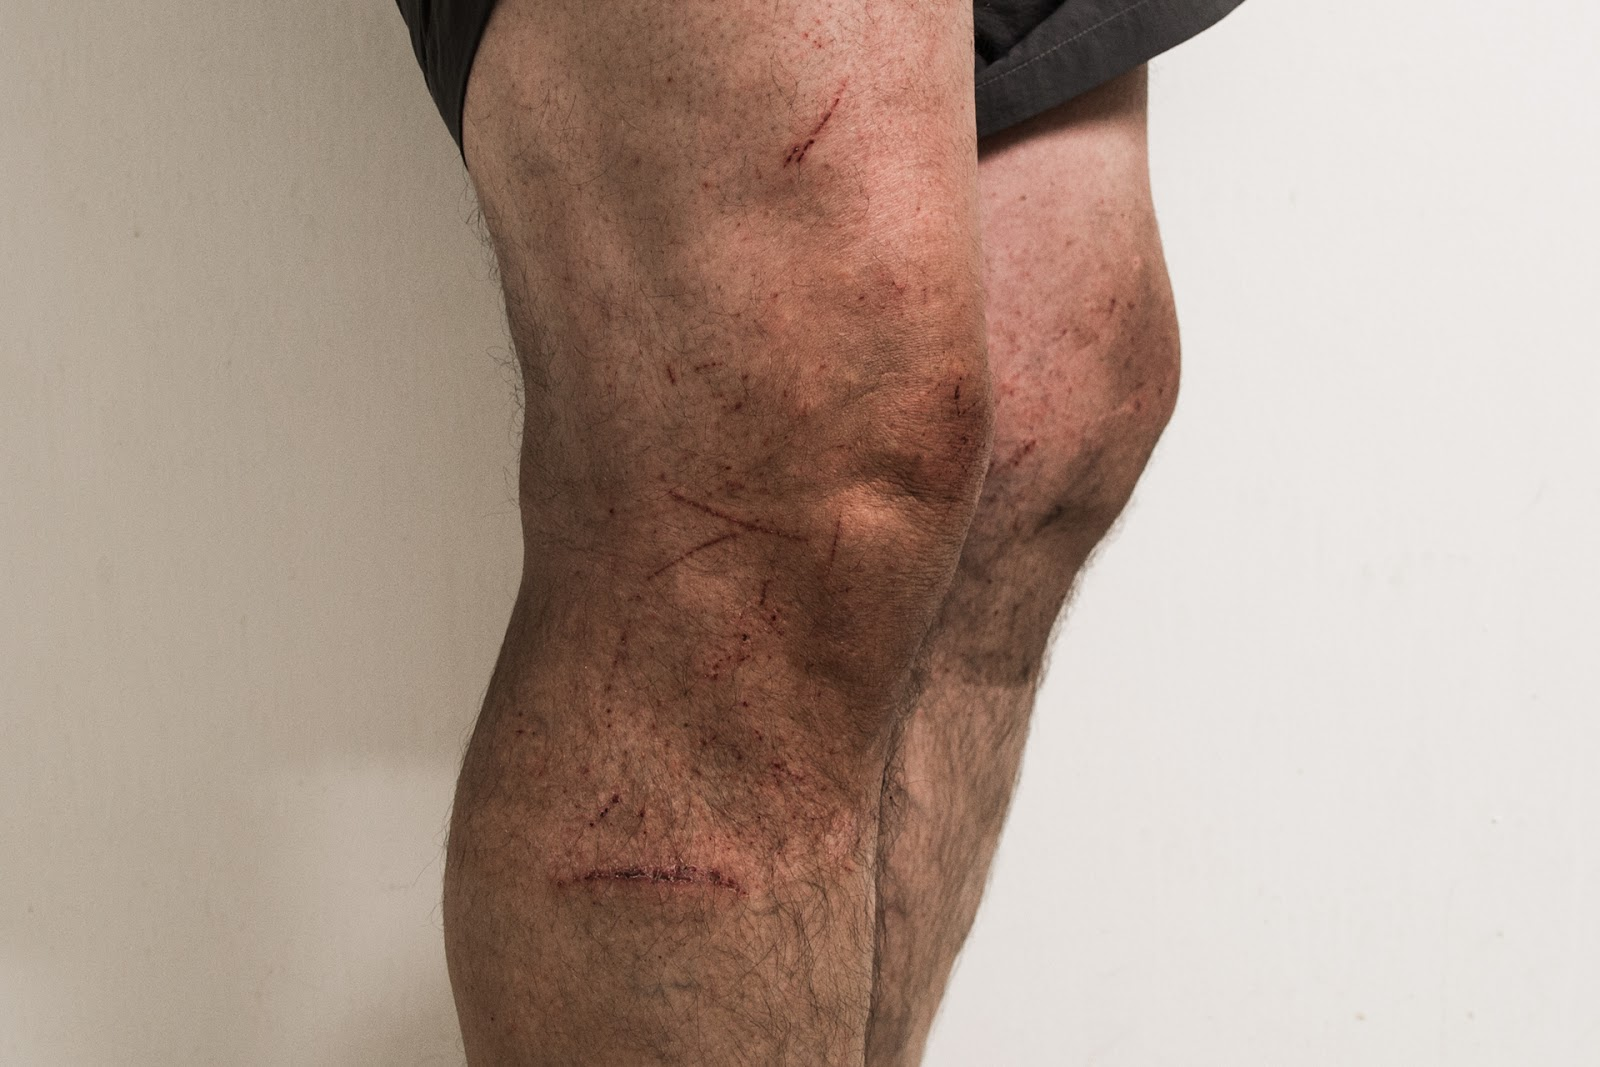 cuts on legs from hiking